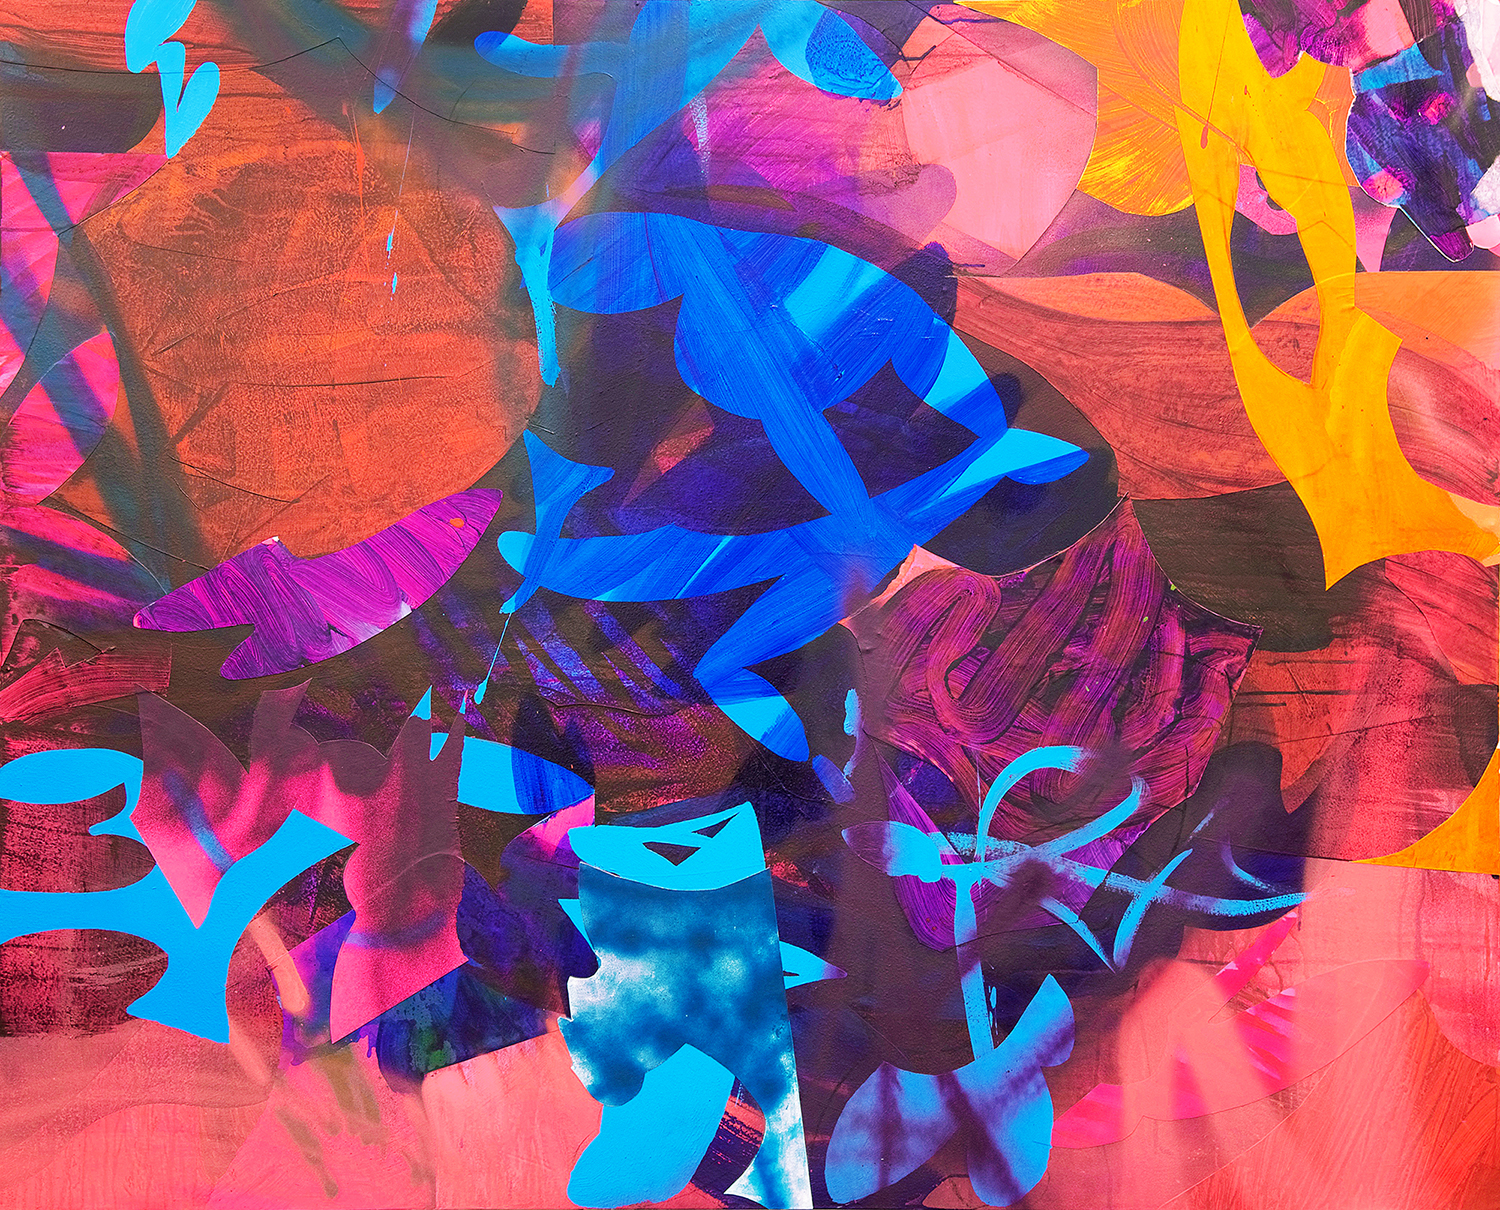 Crossover , 48 x 60 in., Acrylic, spray paint, collage on PVC, 2017